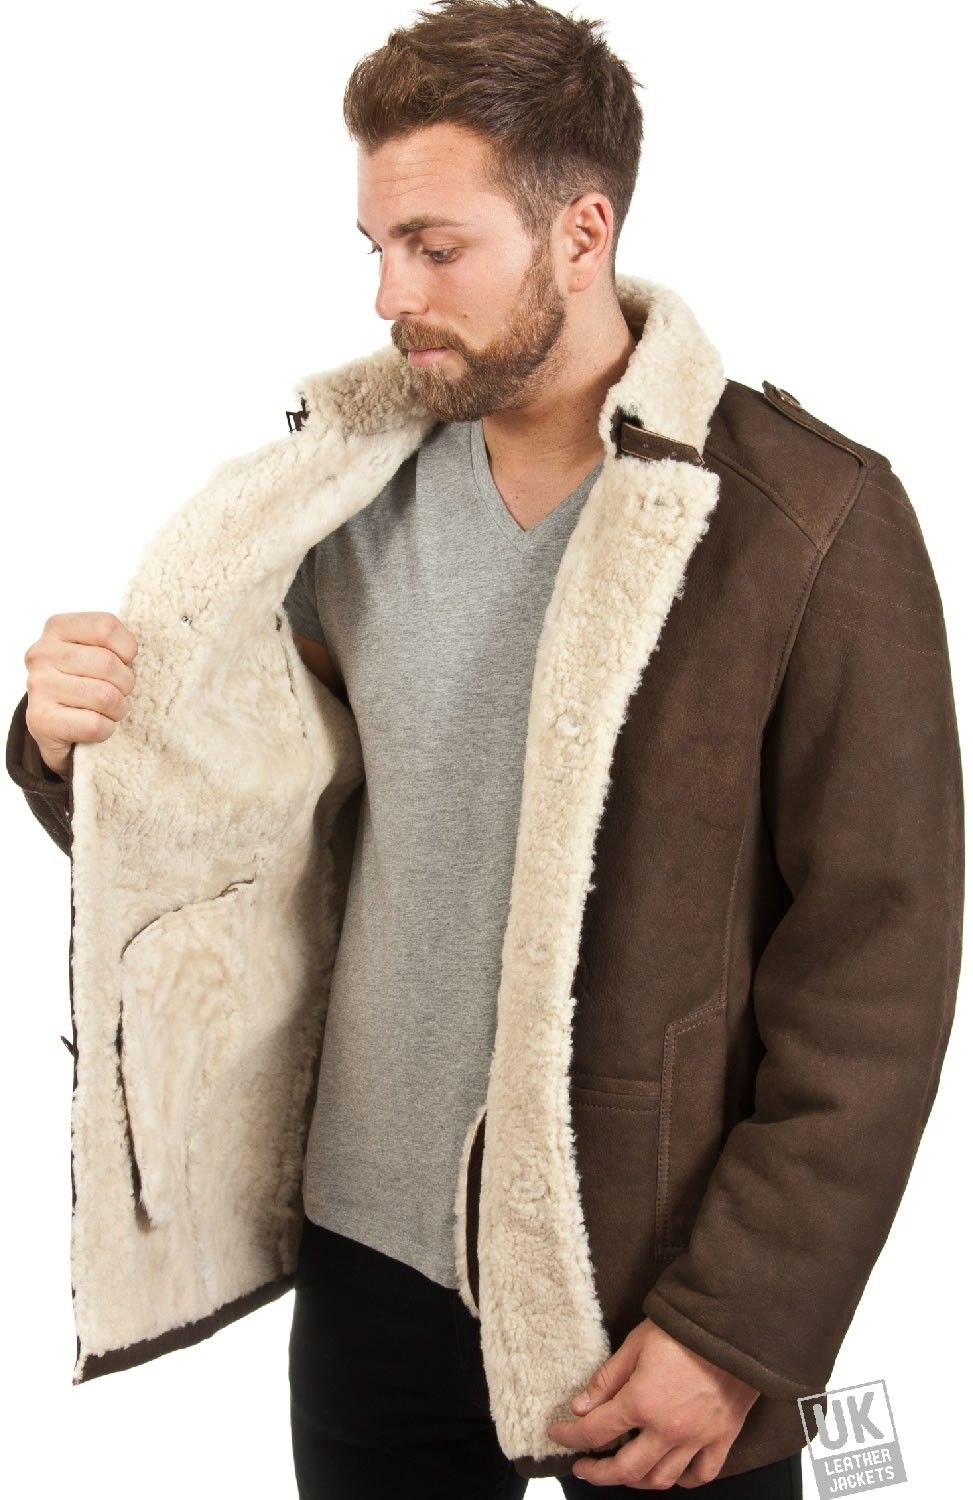 mens sheepskin jacket - Google Search | gear wish list non-film